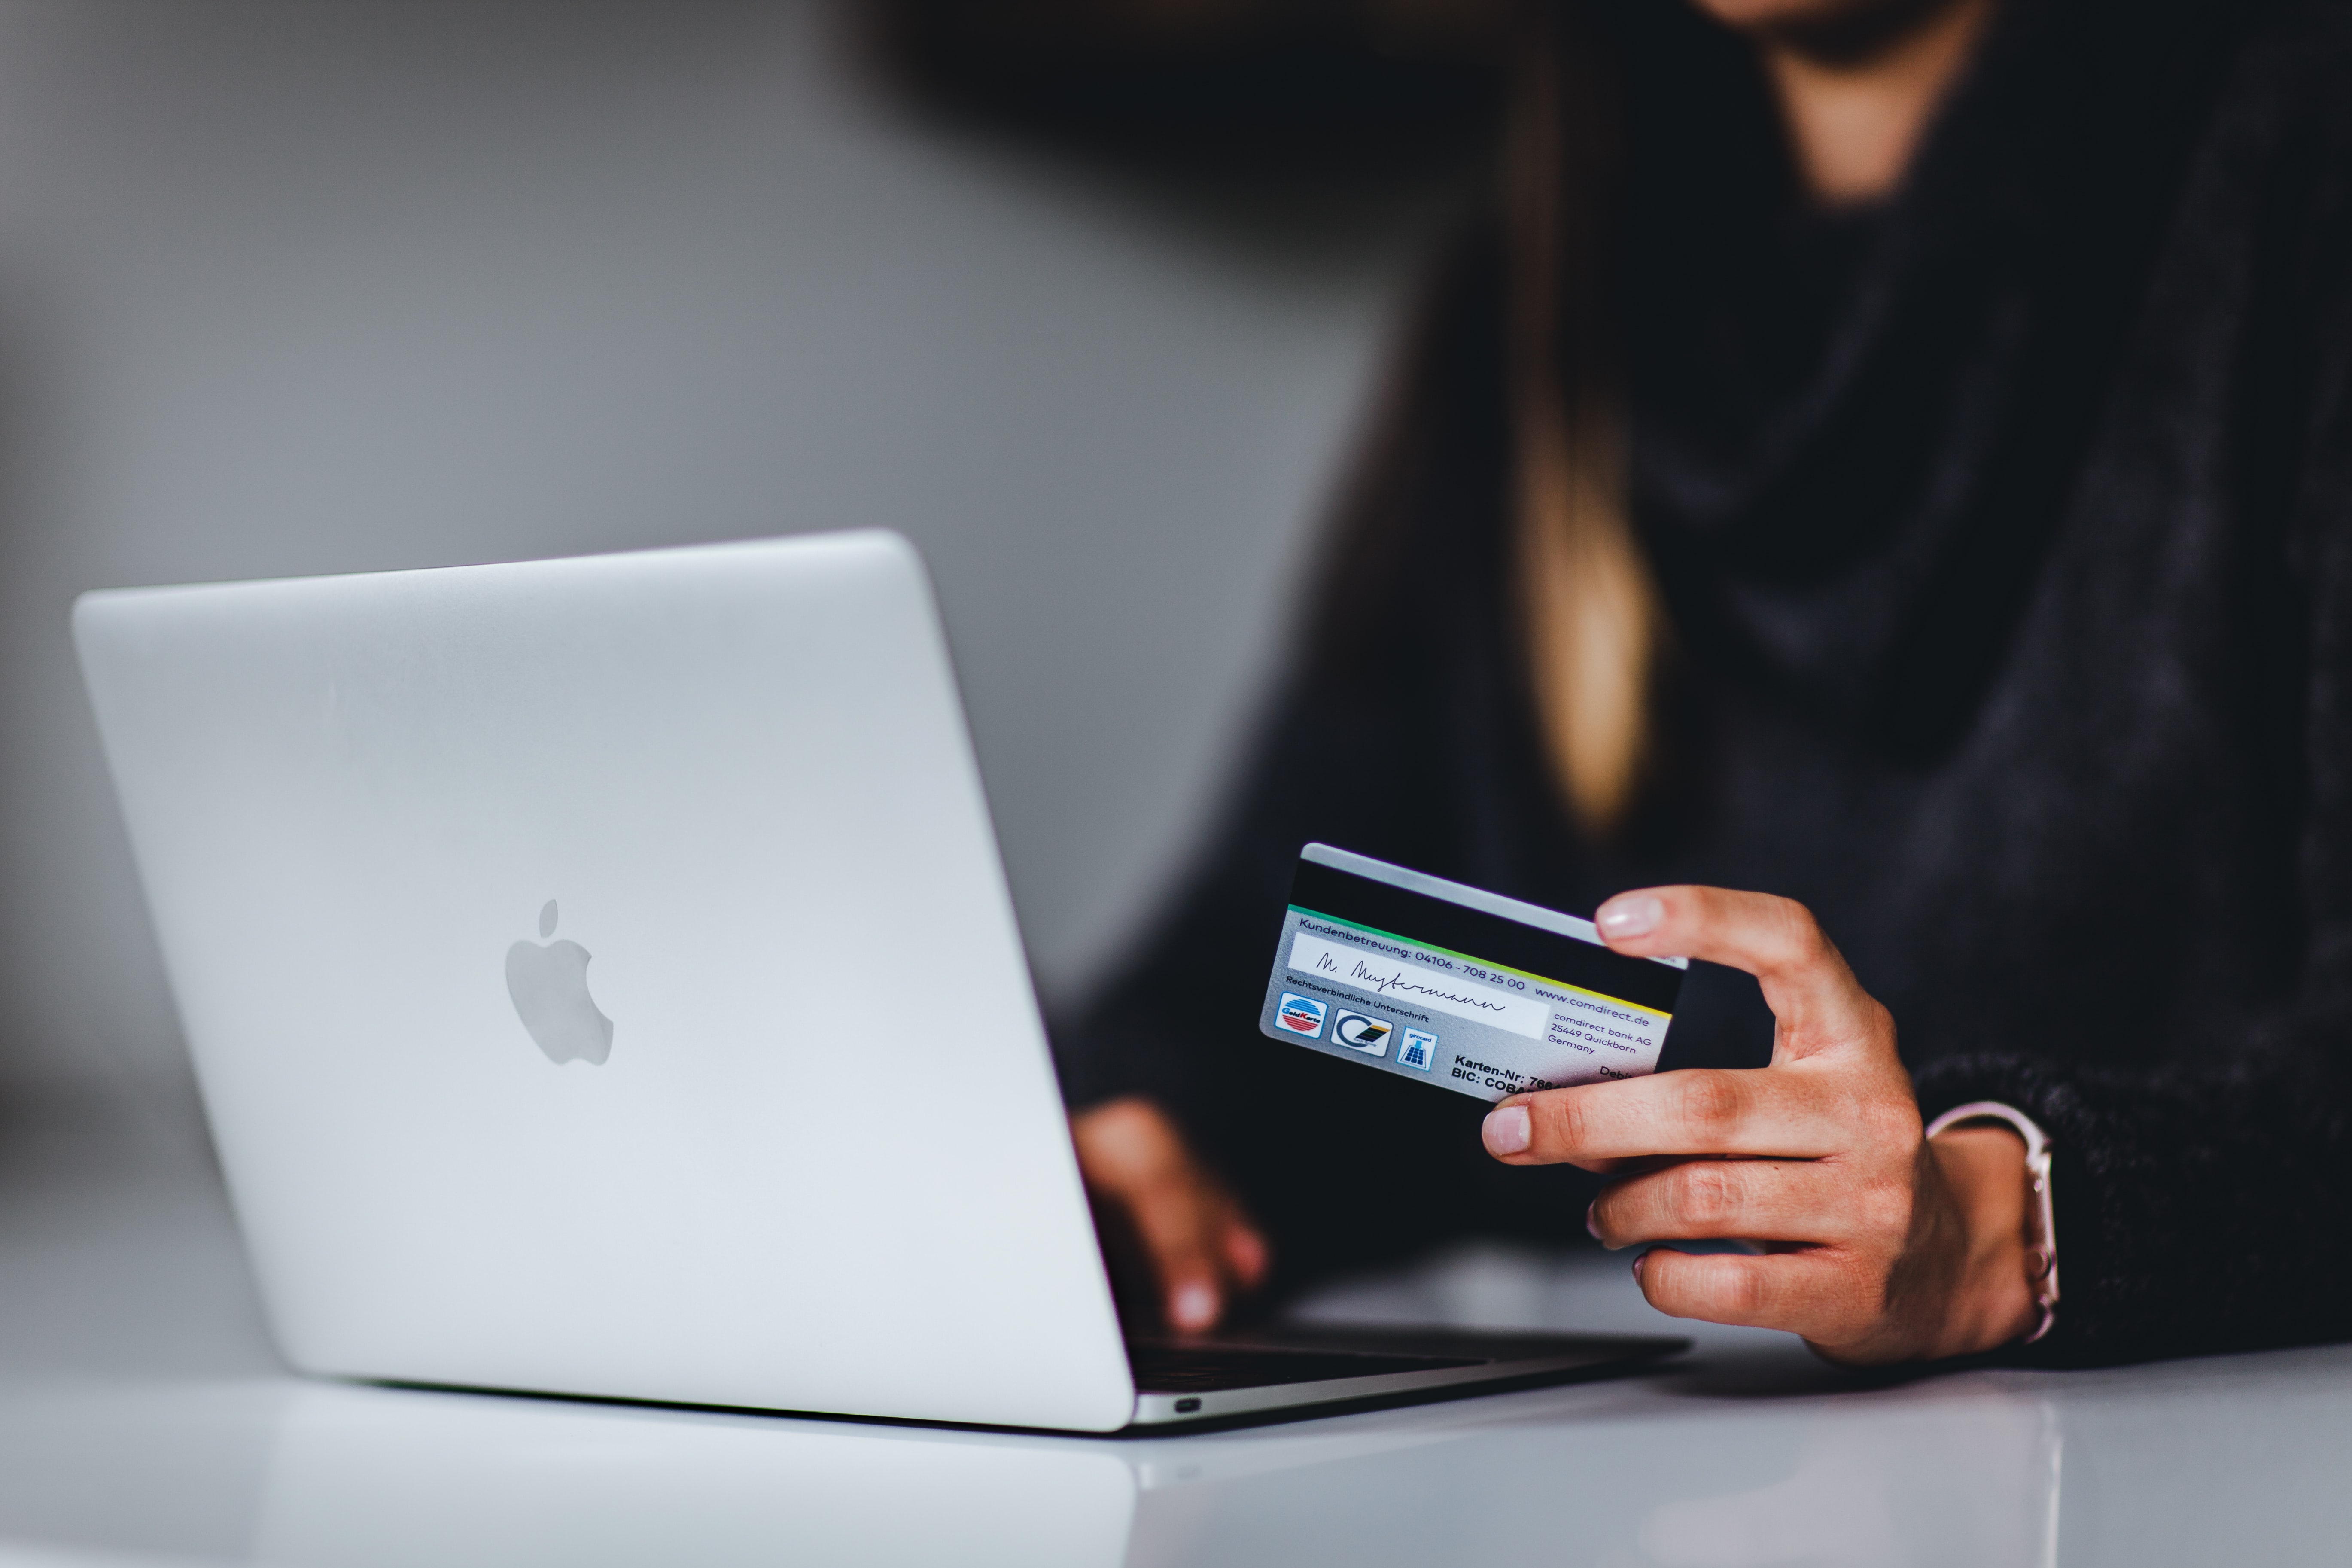 e-commerce and online shopping